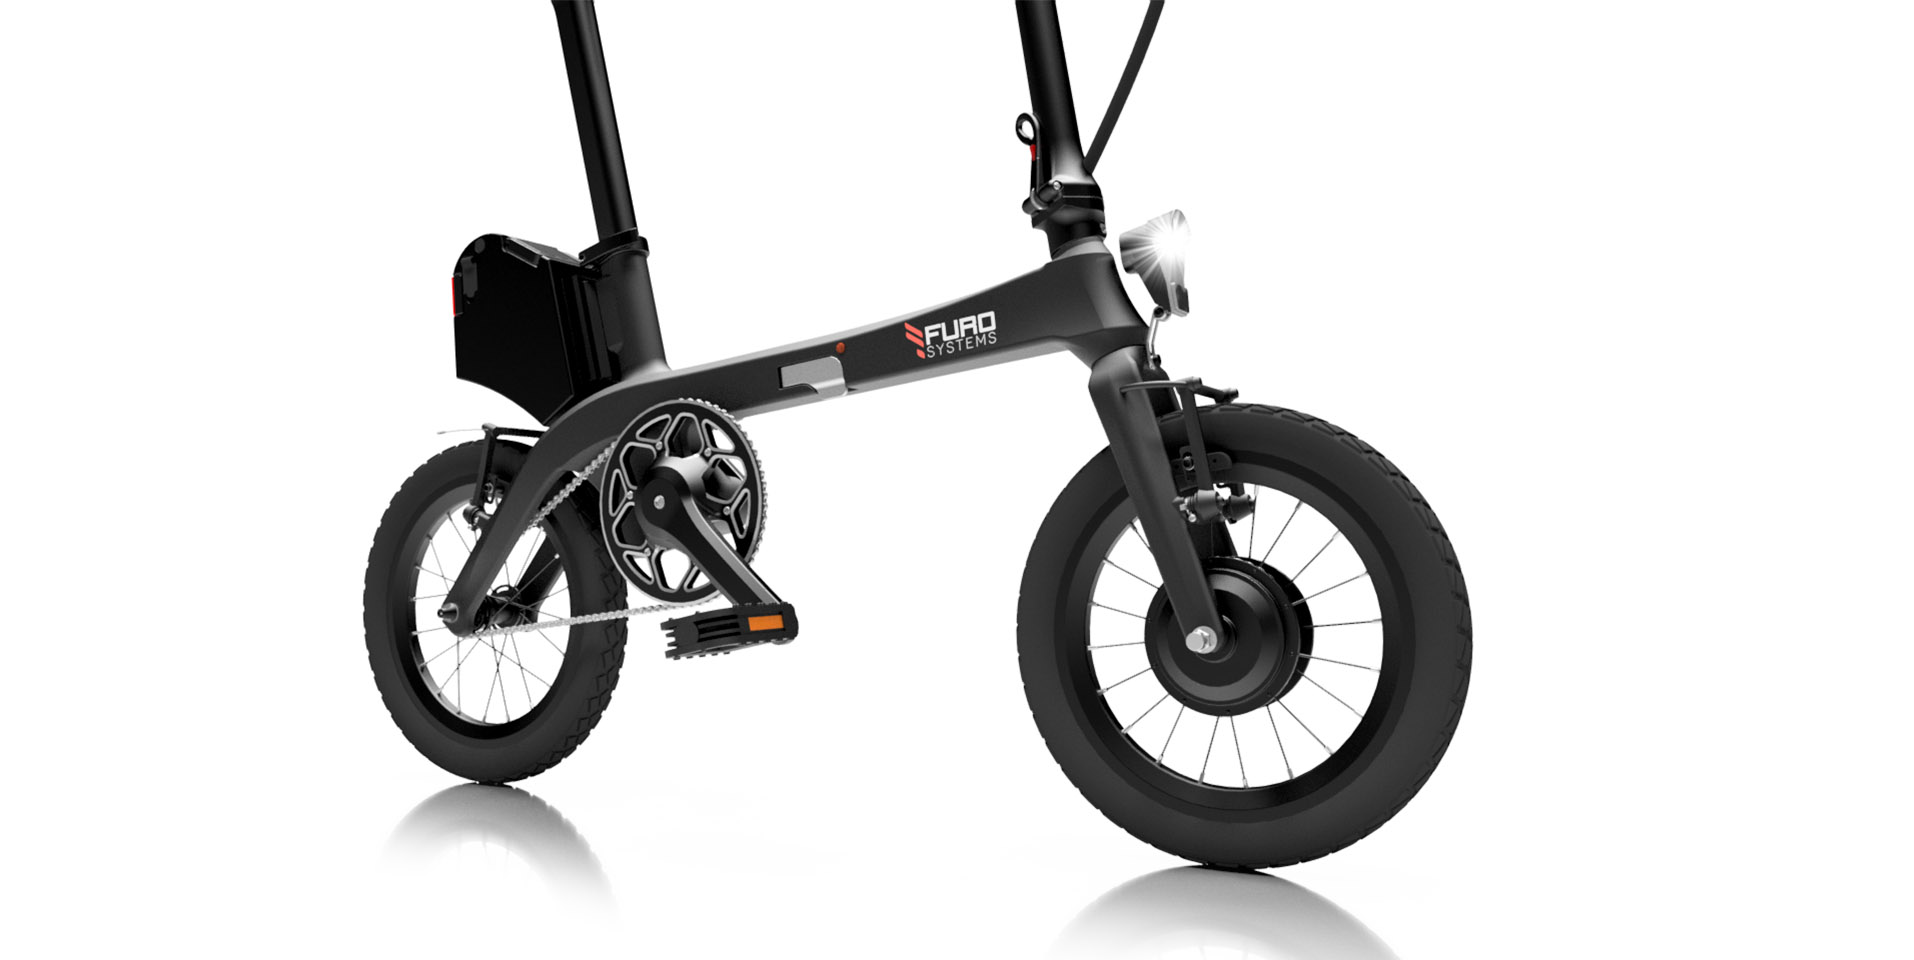 eTura - The World's lightest and most compact folding ebike.